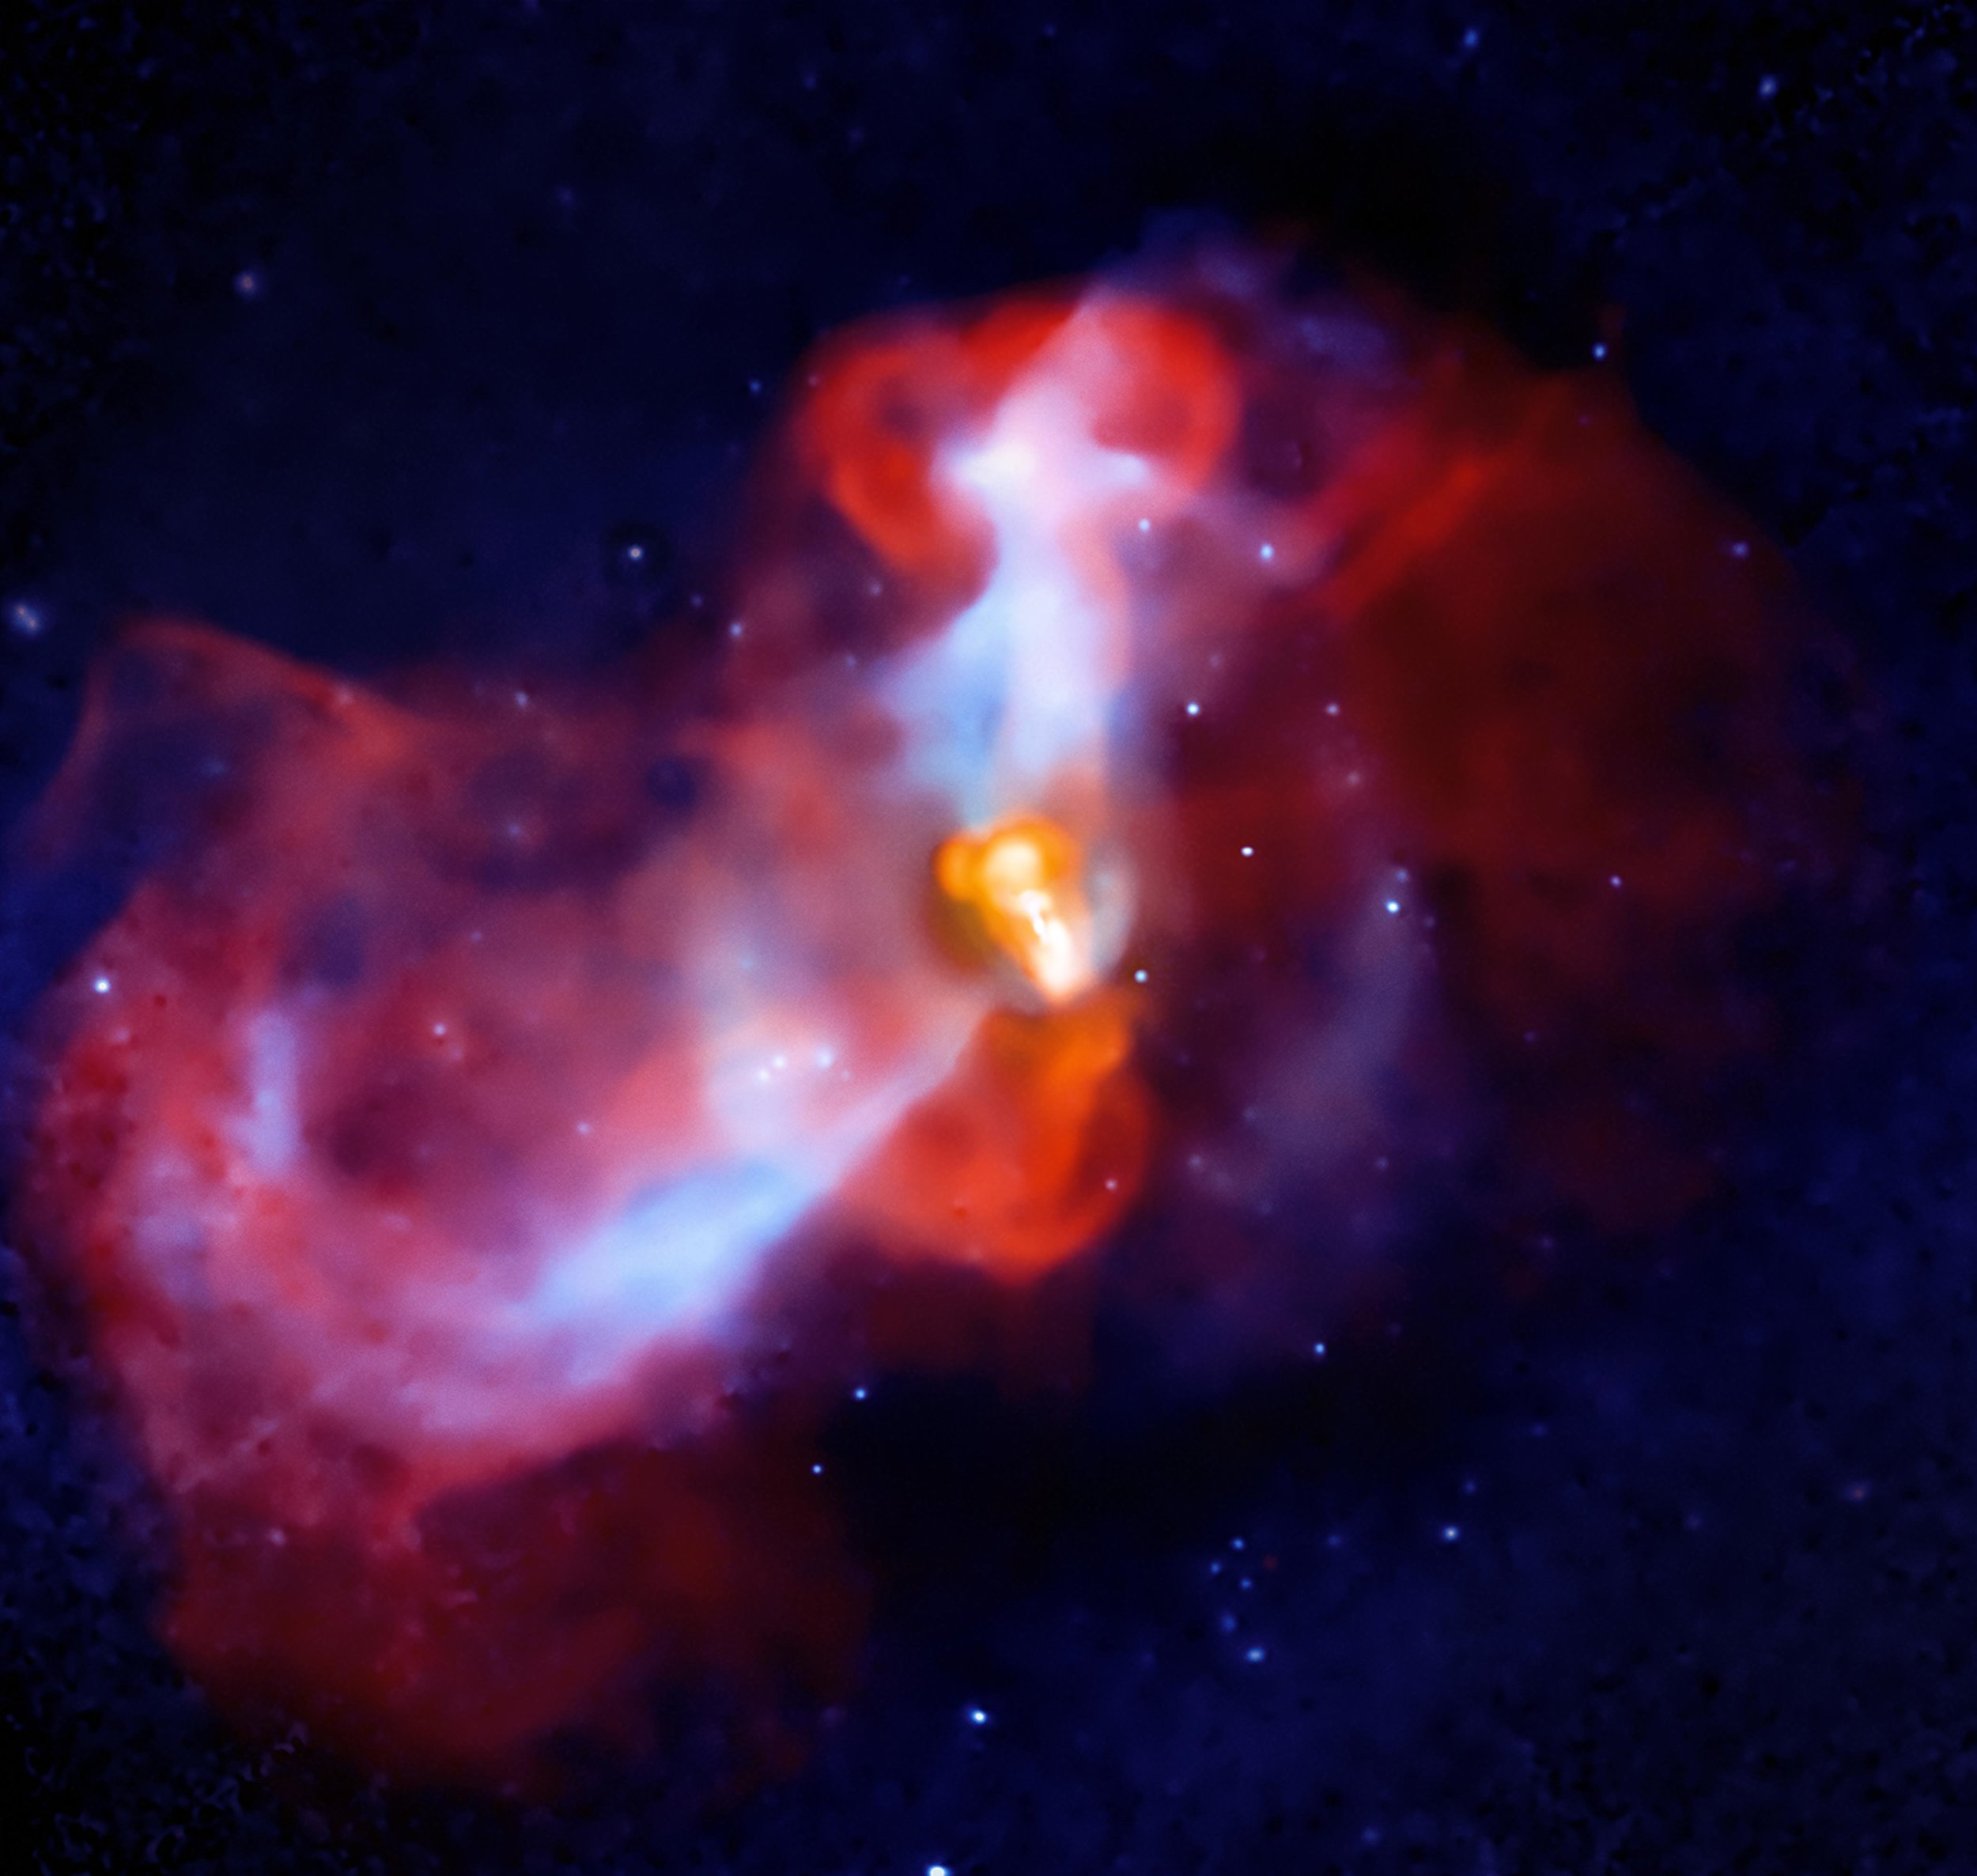 In this X-ray ( Chandra ) and radio ( VLA ) composite image, hot matter (blue in X-ray) from the Virgo cluster falls toward the core of M87 and cools, where it is met by the relativistic jet (orange in radio), producing shock waves in the galaxy's interstellar medium. Source: Wikipedia